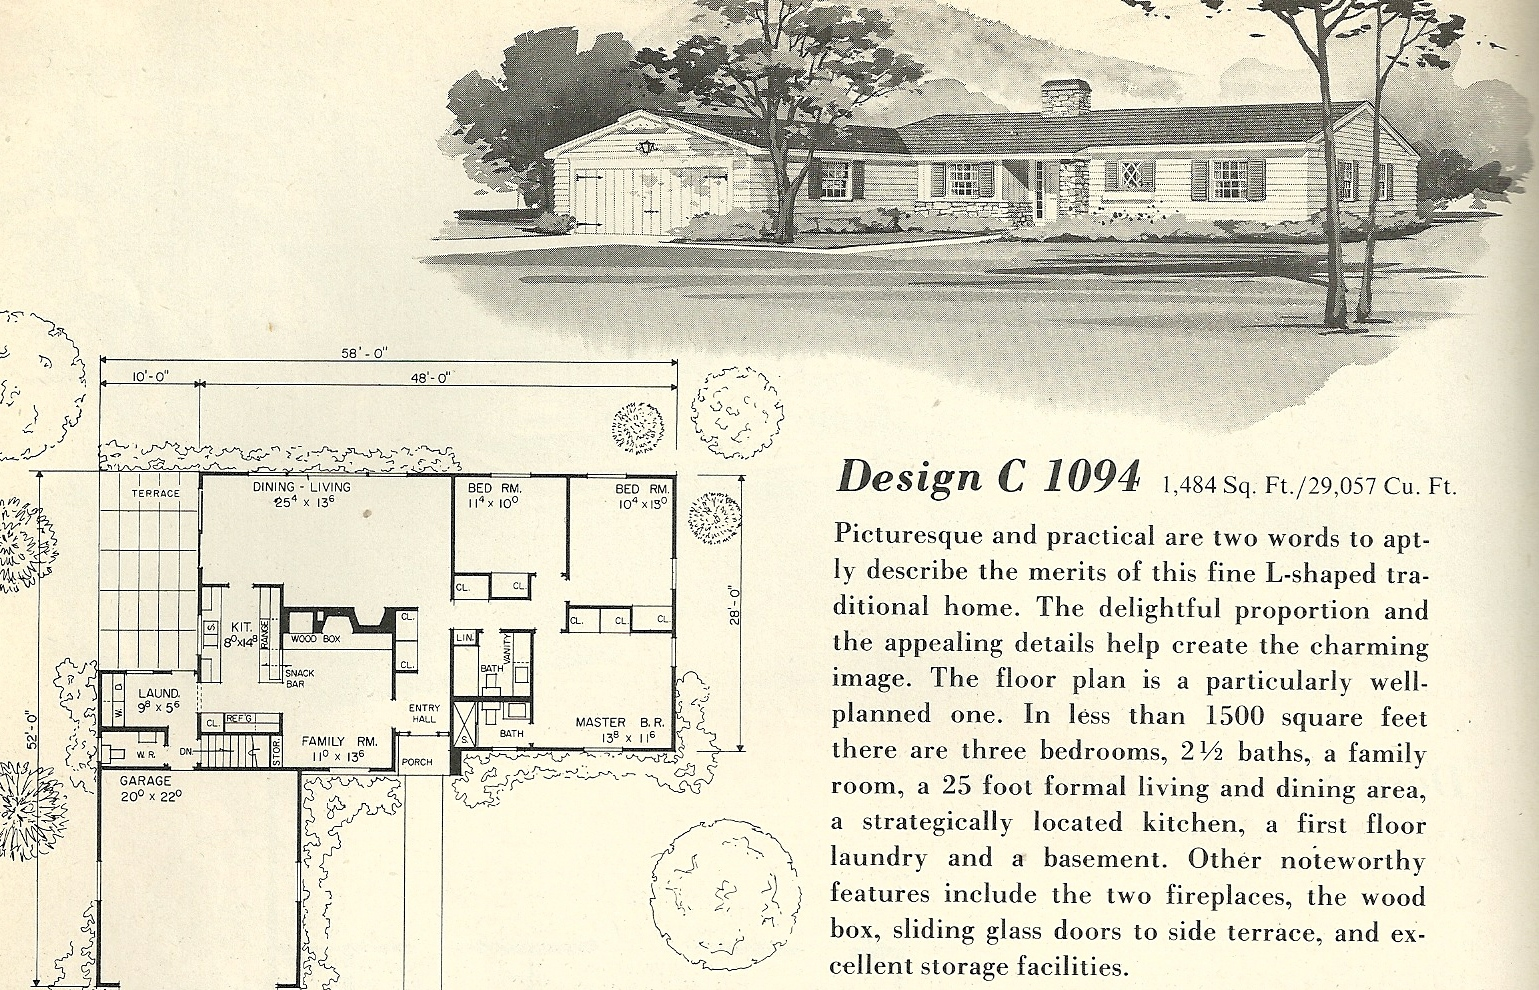 Vintage house plans 1094 antique alter ego for 1960 ranch house plans